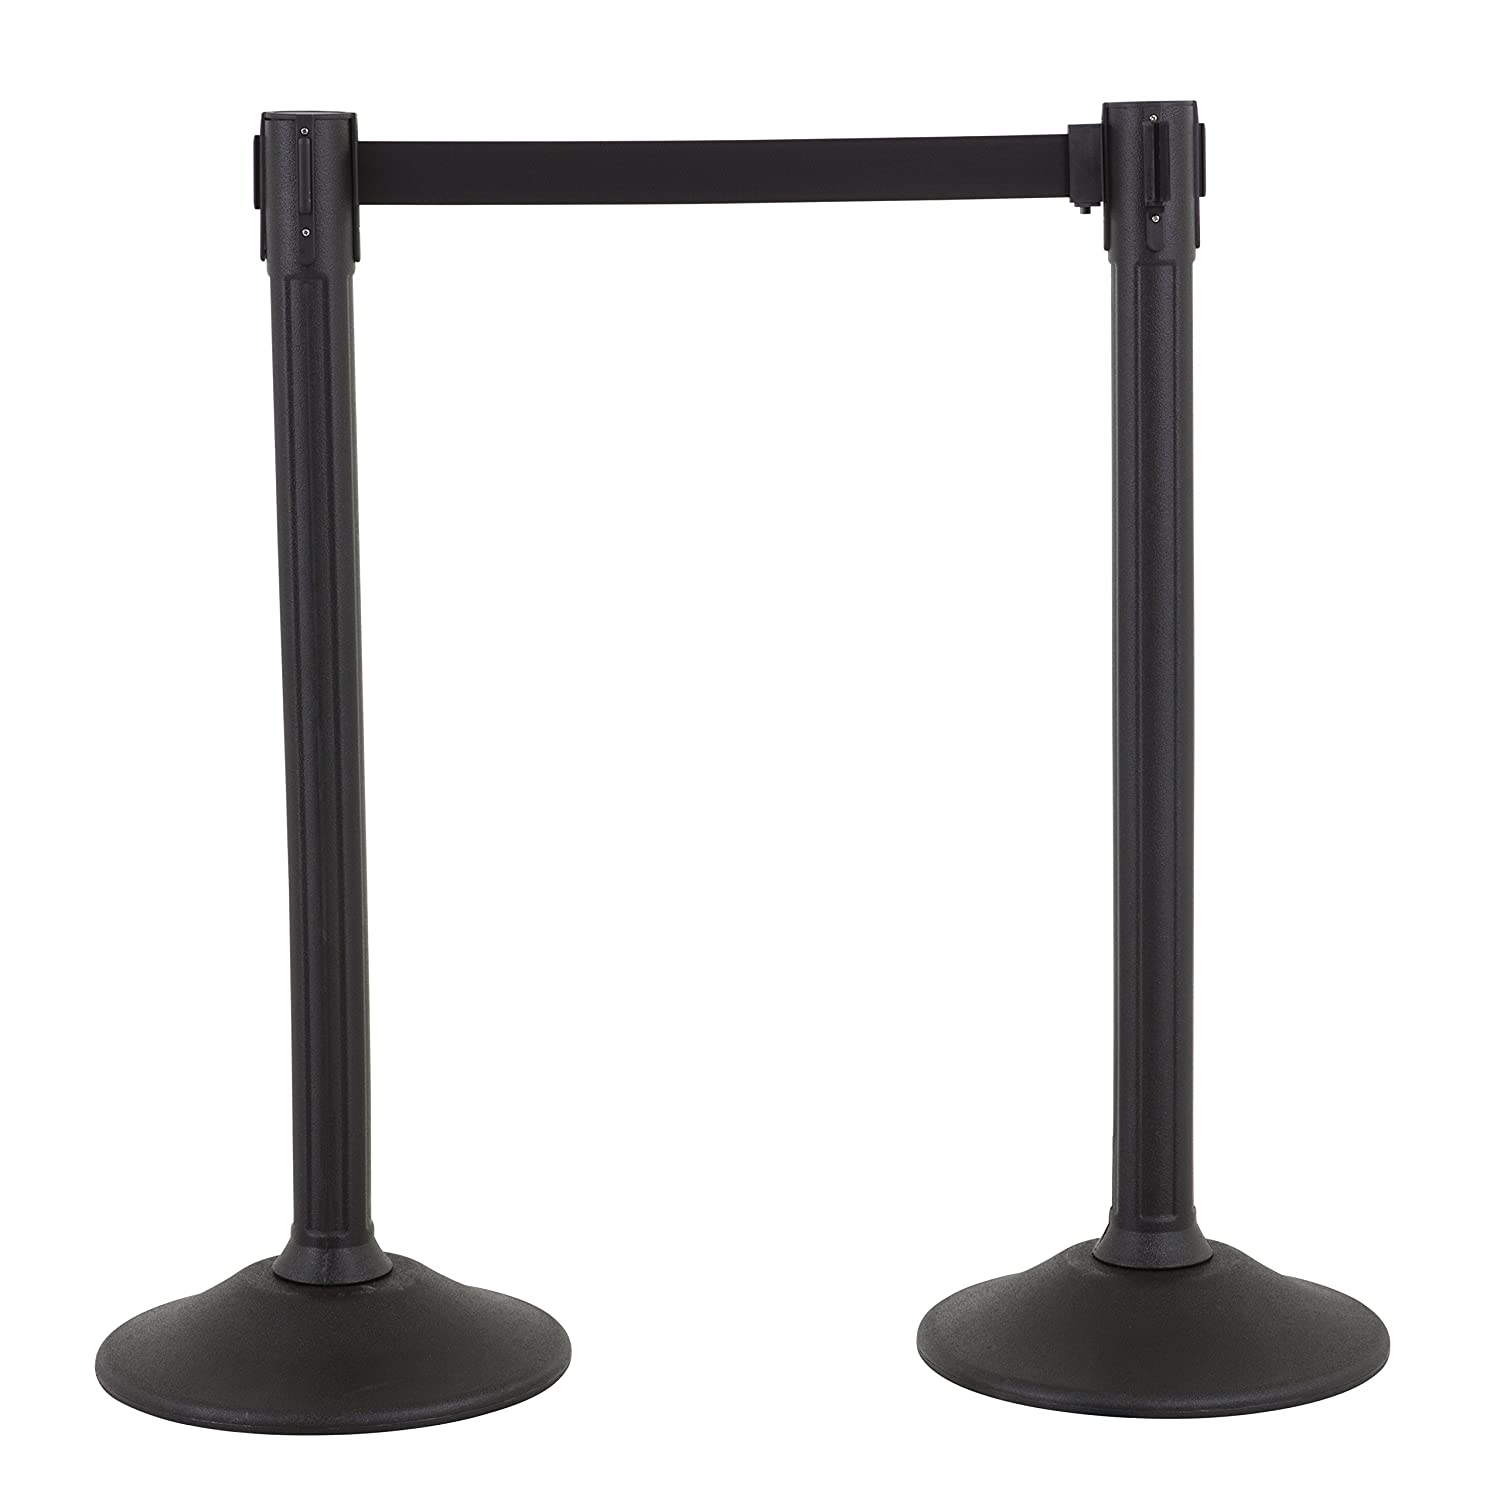 US Weight Sentry Stanchion with 6.5 Foot Retractable Belt – Easy Connect Assembly (2-Pack)